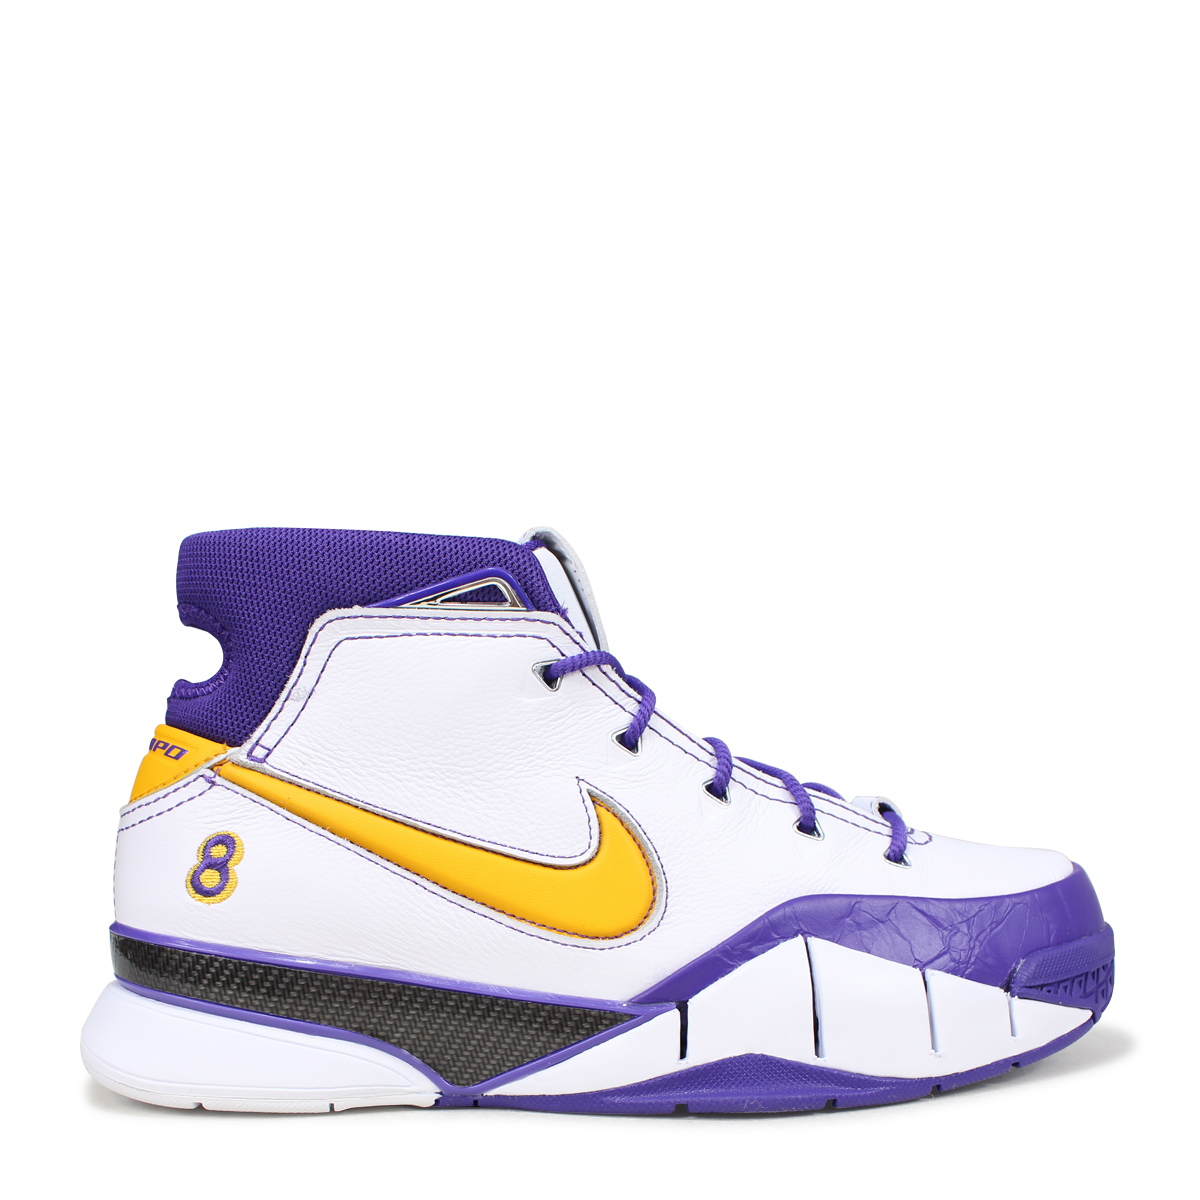 purchase cheap 8de30 a4543 ... switzerland nike zoom kobe 1 protro final seconds nike corby 1 sneakers  men aq2728 101 white